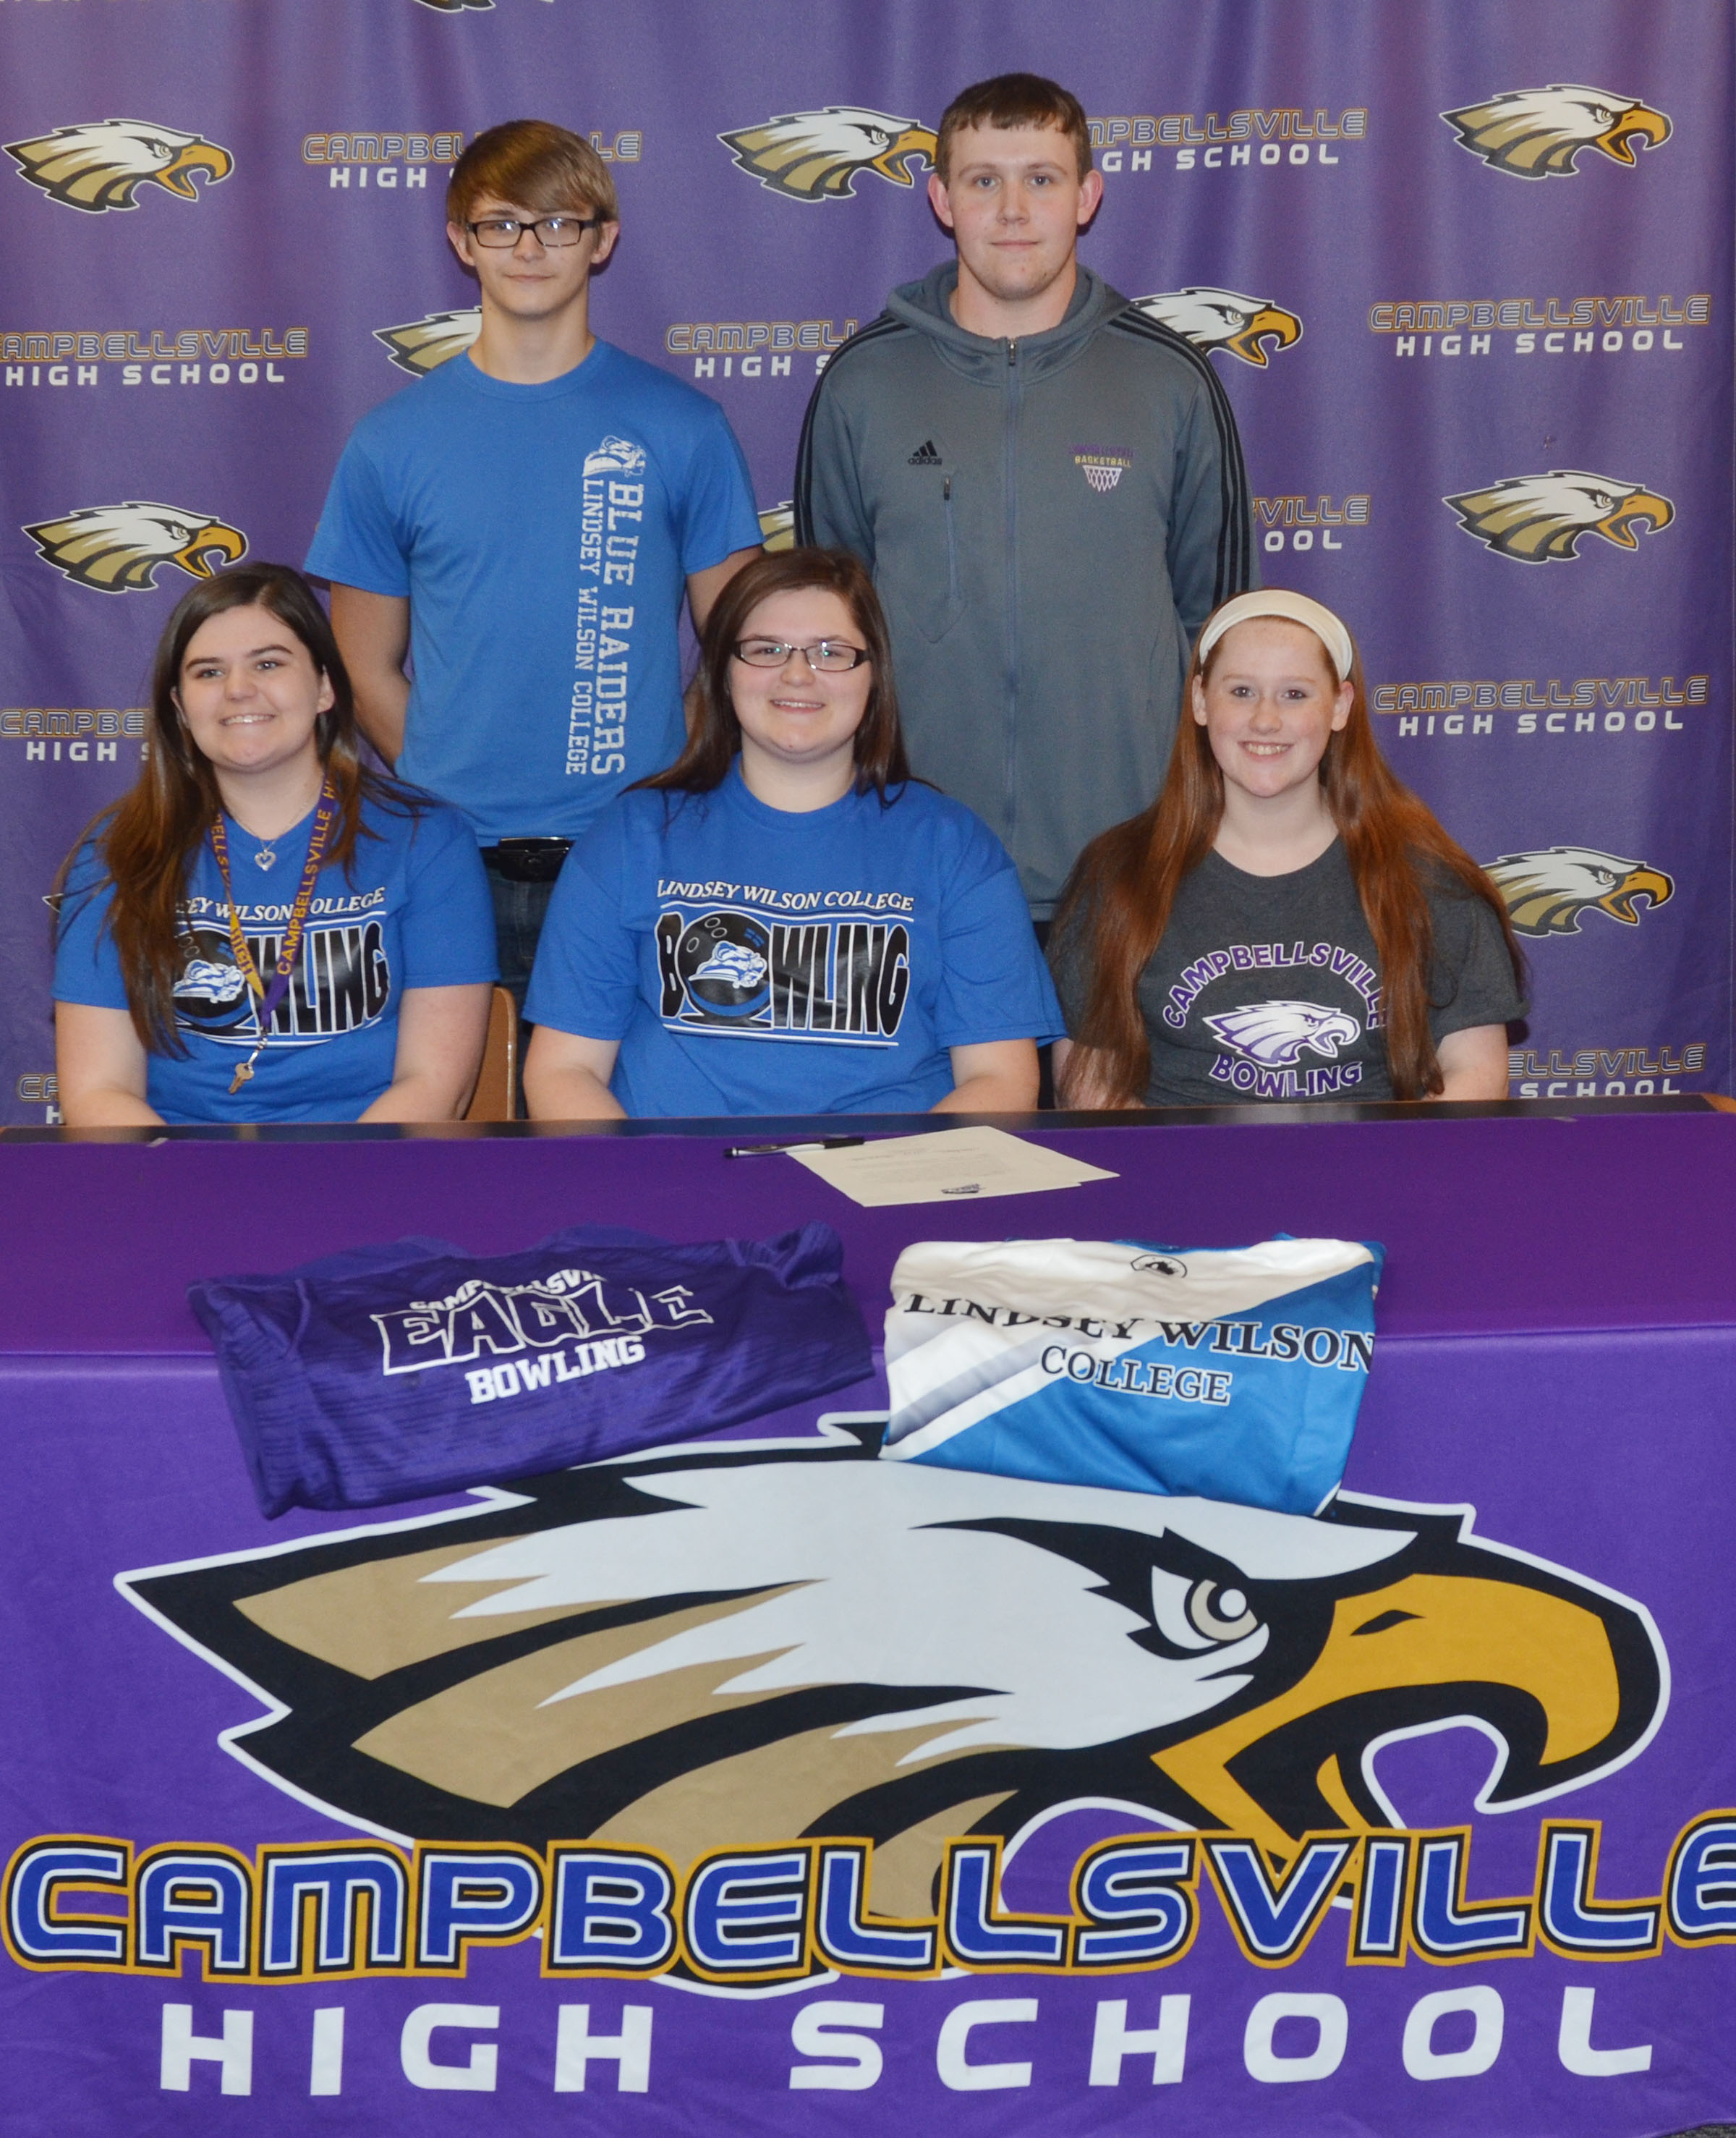 Campbellsville High School senior Vera Brown will continue her academic and bowling career at Lindsey Wilson College in the fall. She officially signed her letter of intent in a special ceremony on Wednesday, Feb. 1. Above, Brown is pictured with some of her CHS bowling teammates. From left, front, are sister and CHS junior Vivian Brown, Vera, and sophomore Gracie Miller. Back, brother and CHS freshman Dalton Brown and senior Jared Brewster.